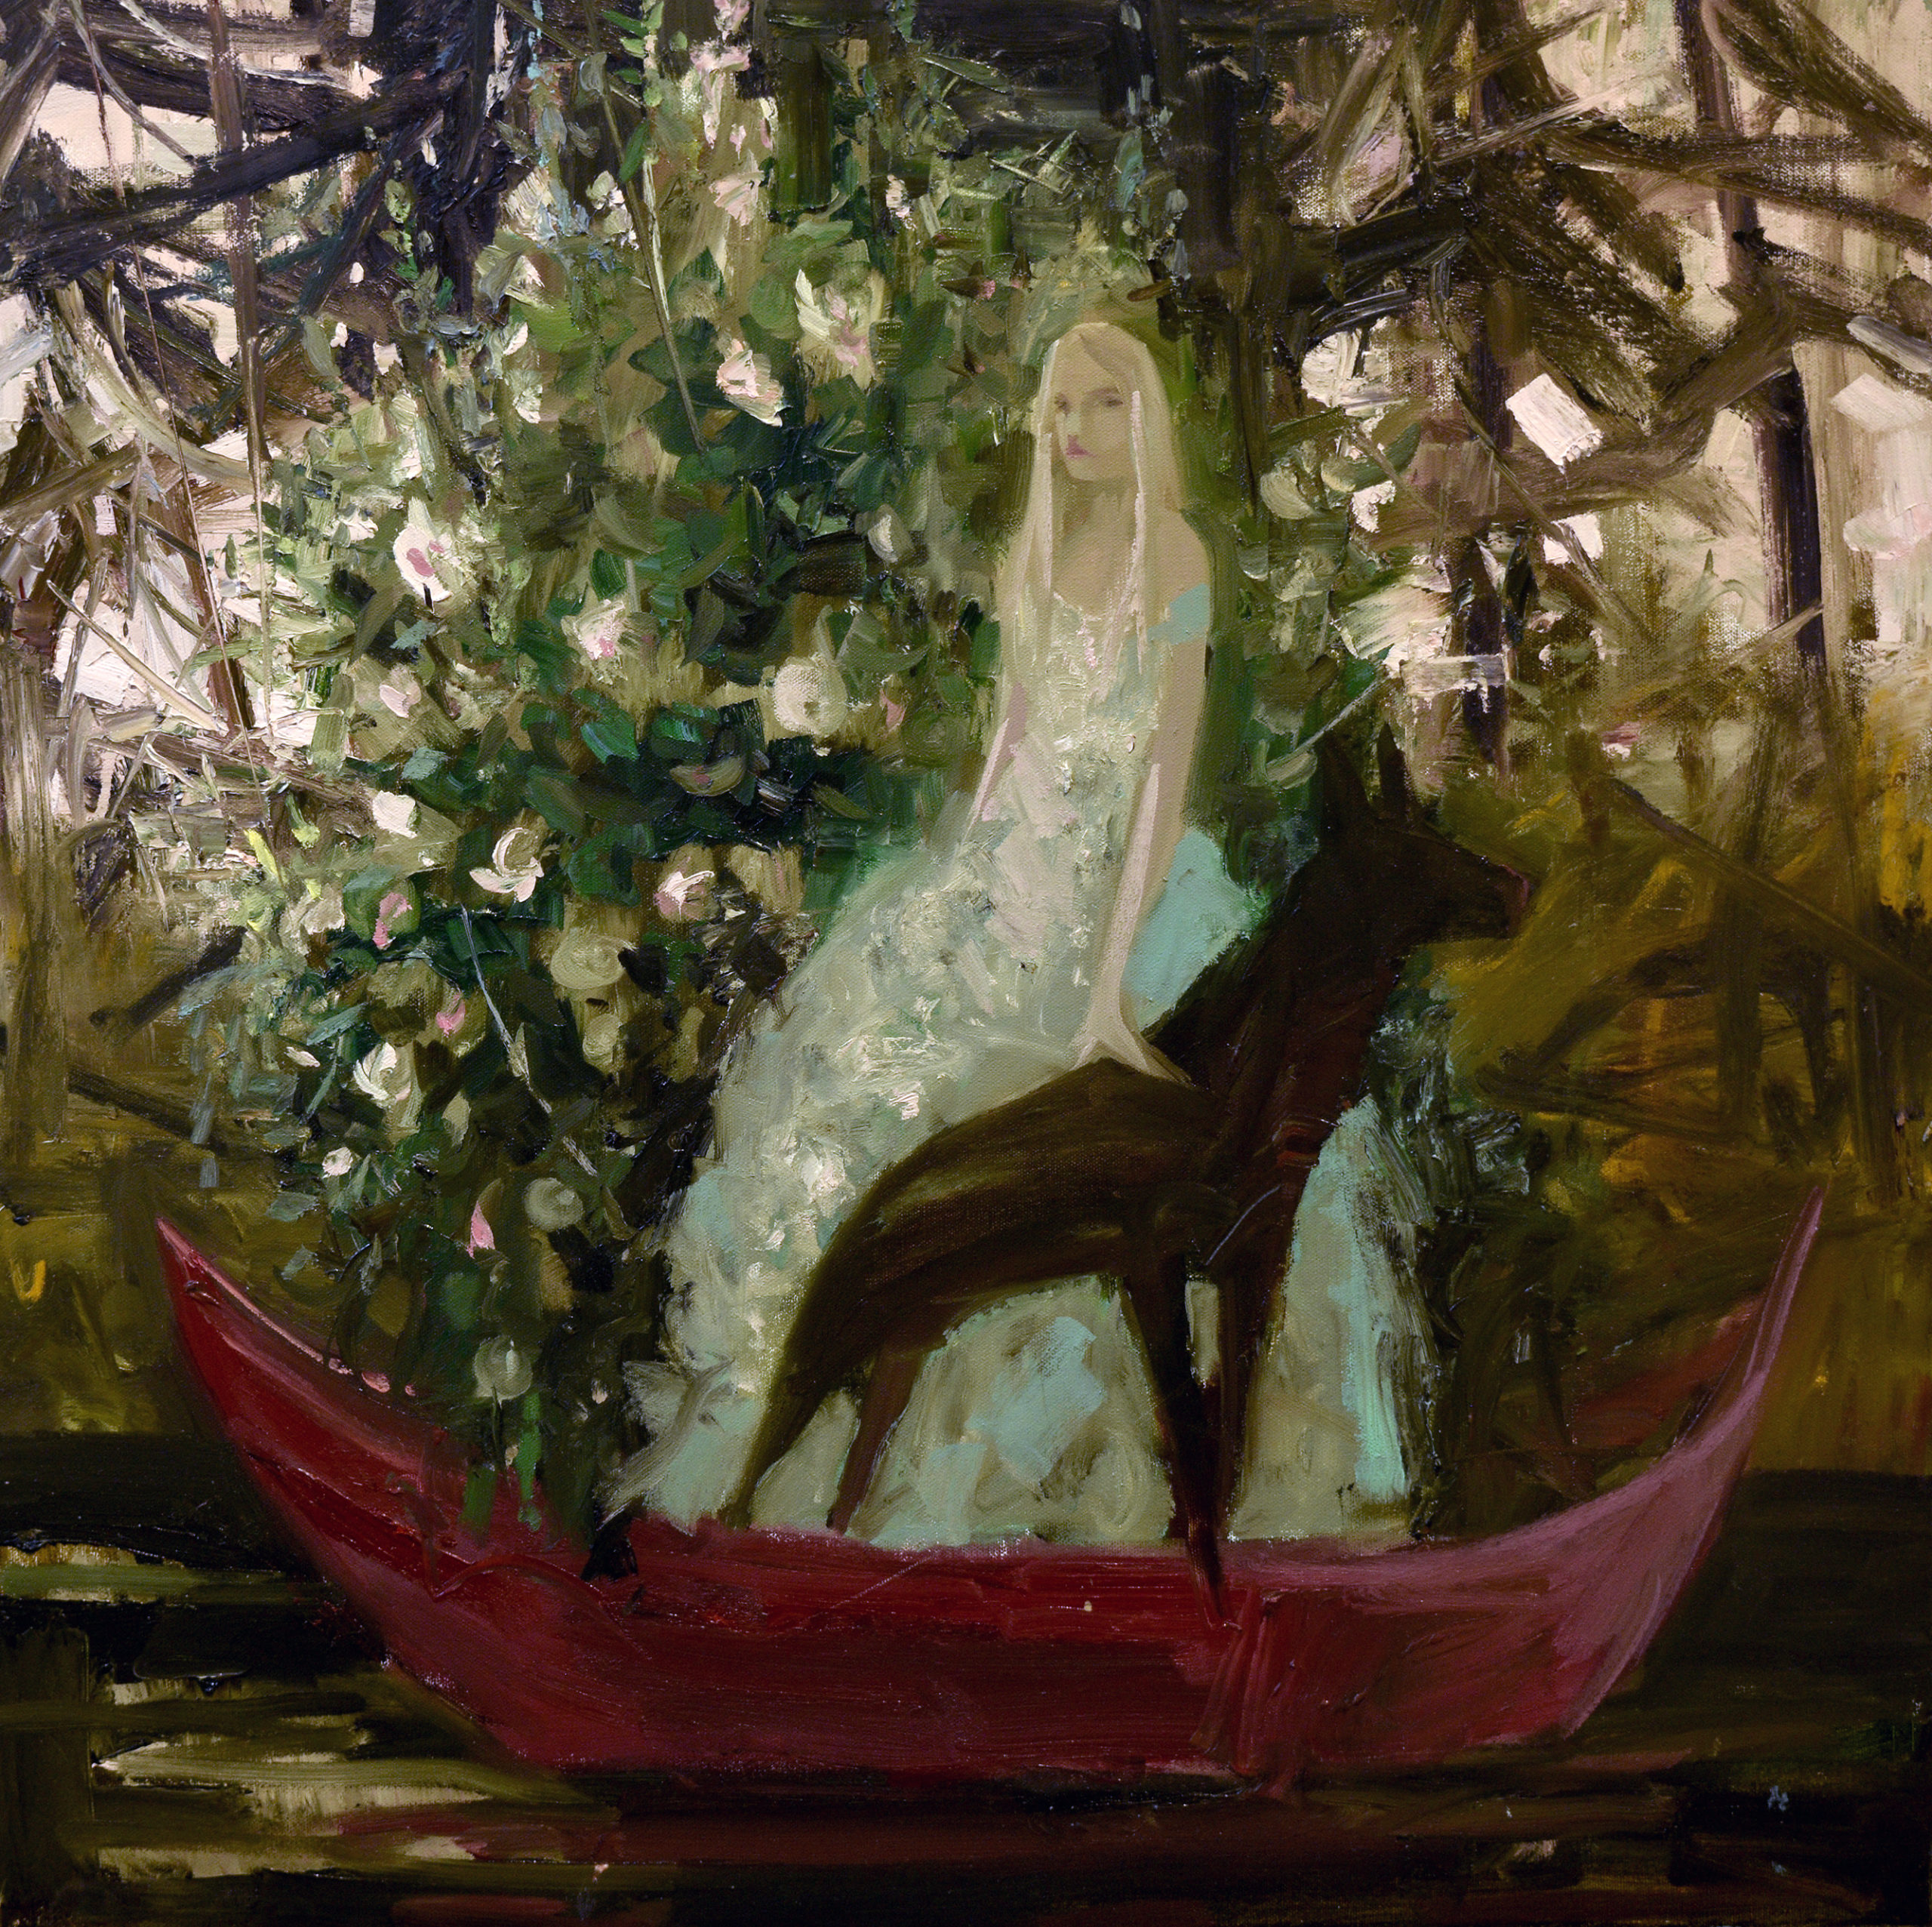 girl and dog stand in front of flower bush on boat